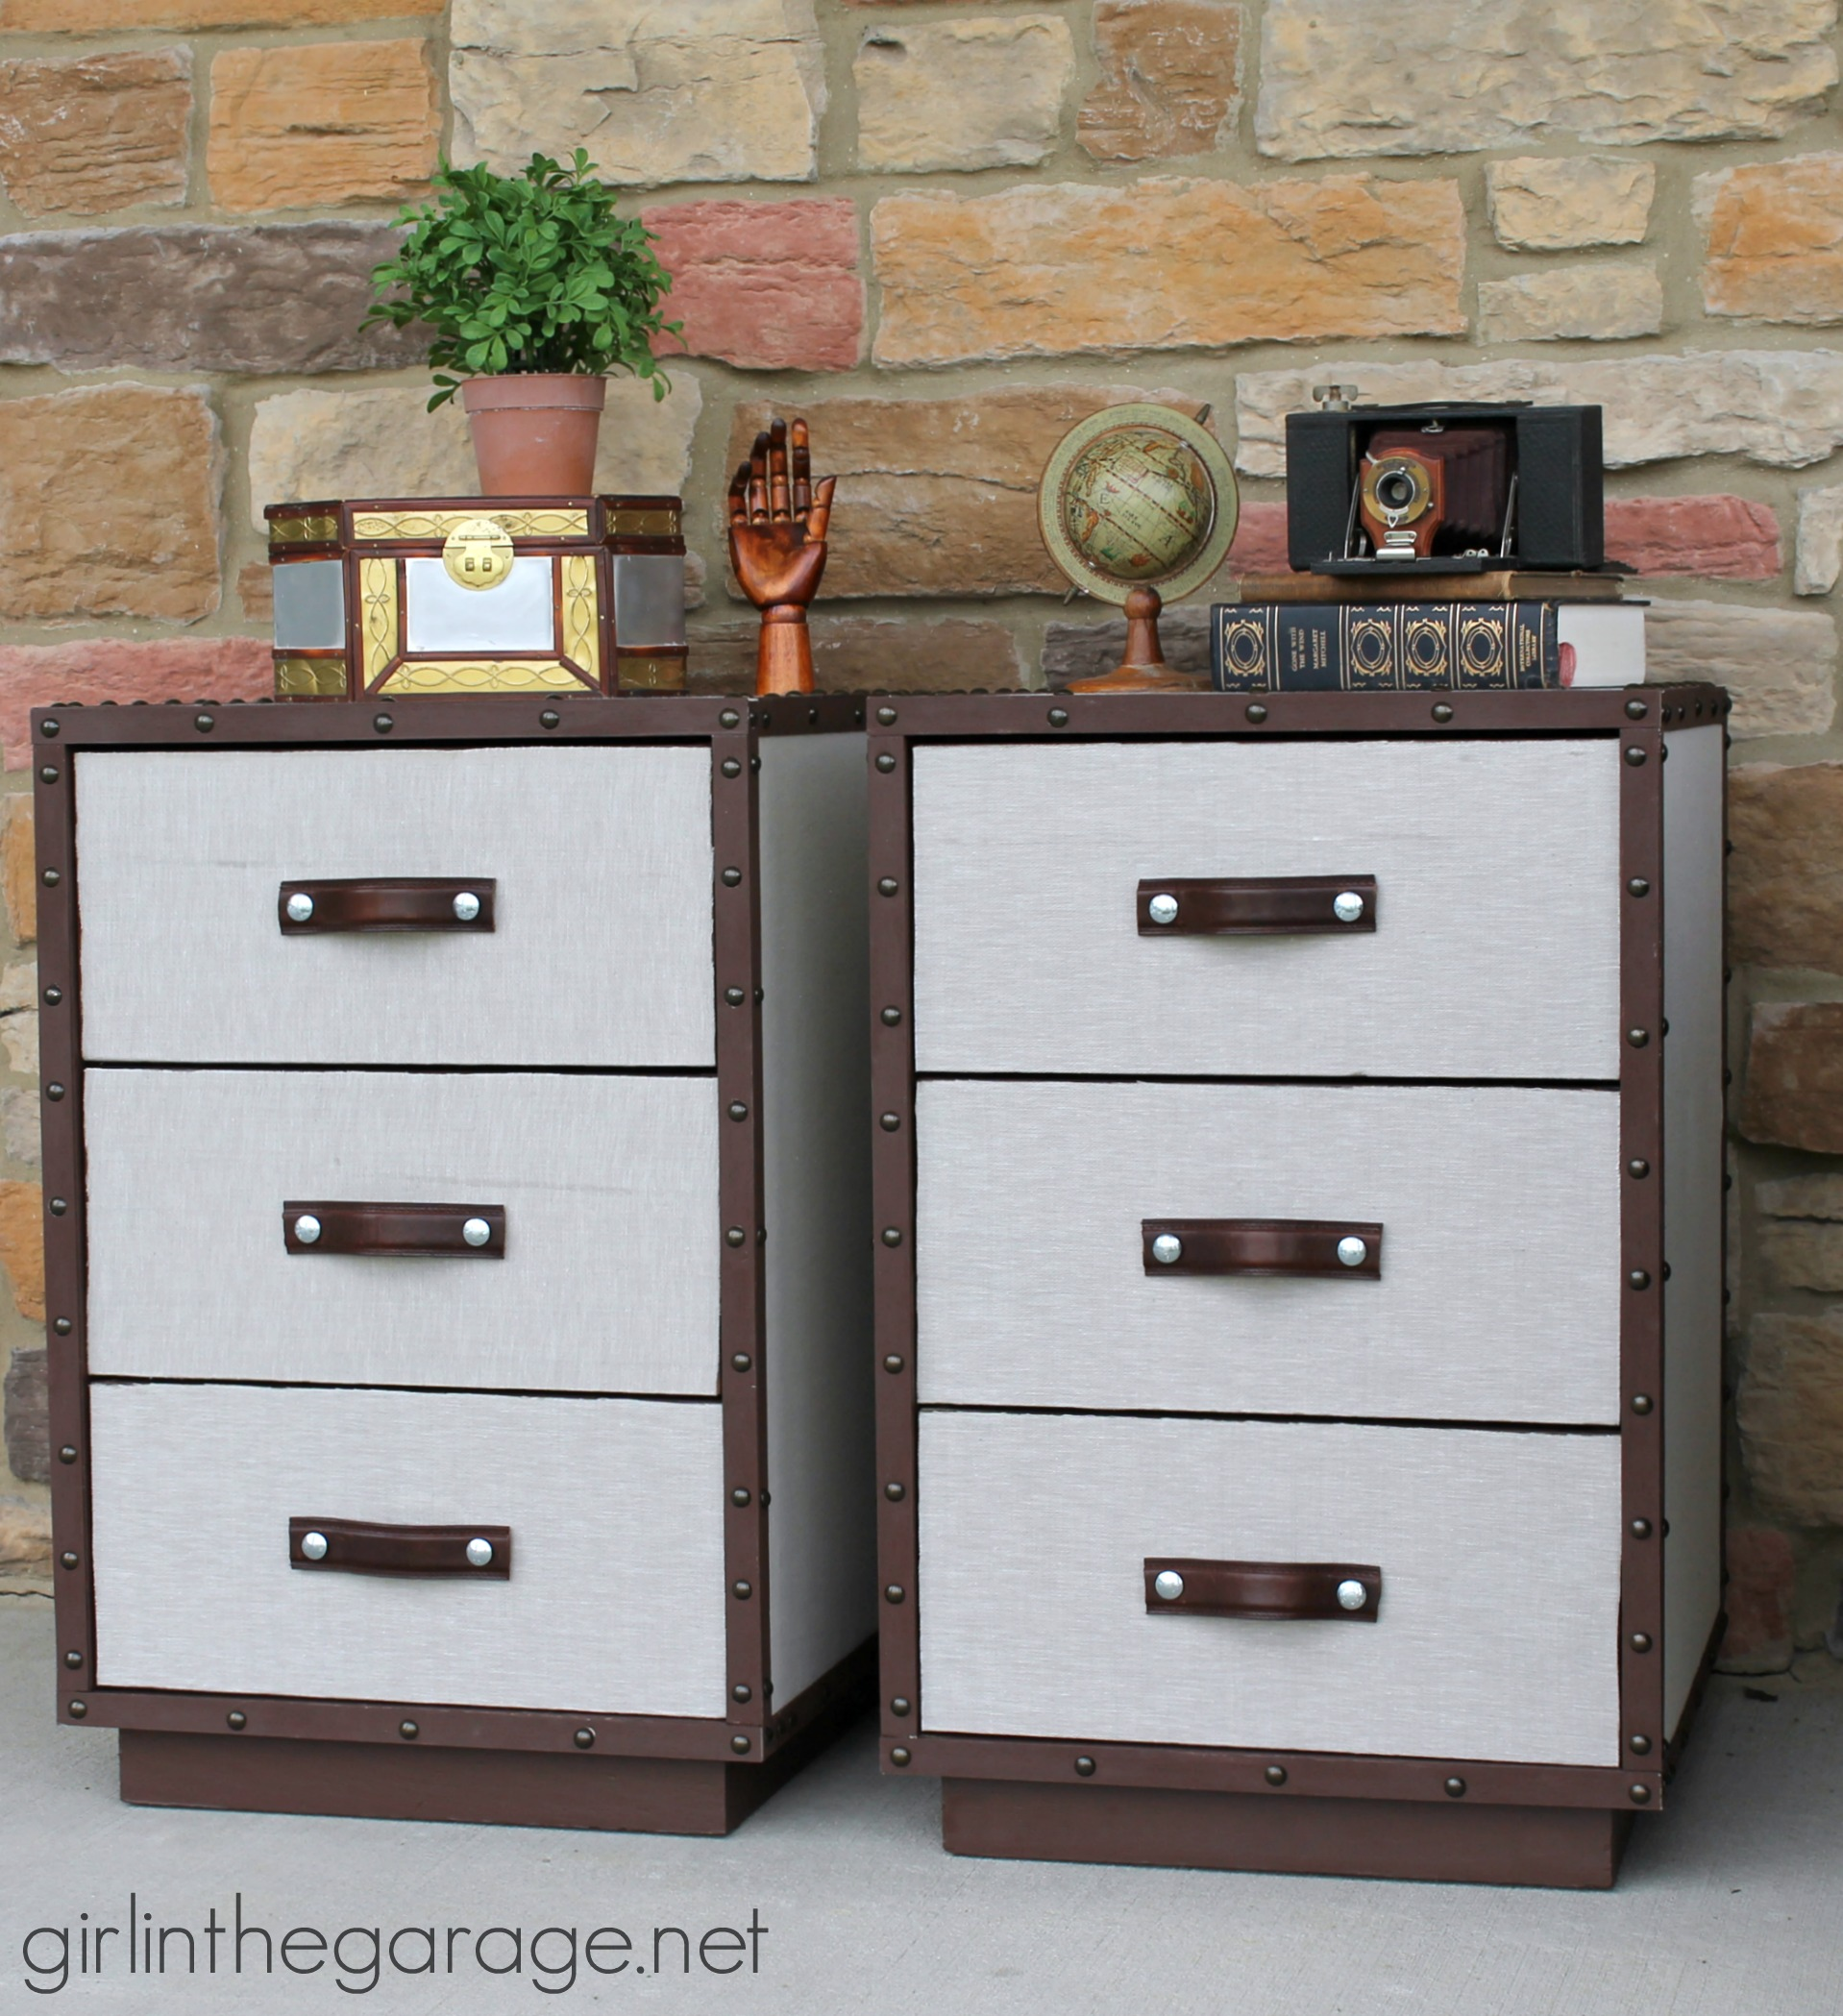 diy furniture makeover. Two Nightstands Are Transformed Into Pottery Barn Inspired DIY Trunk Bedside Tables For Themed Furniture Makeover Diy